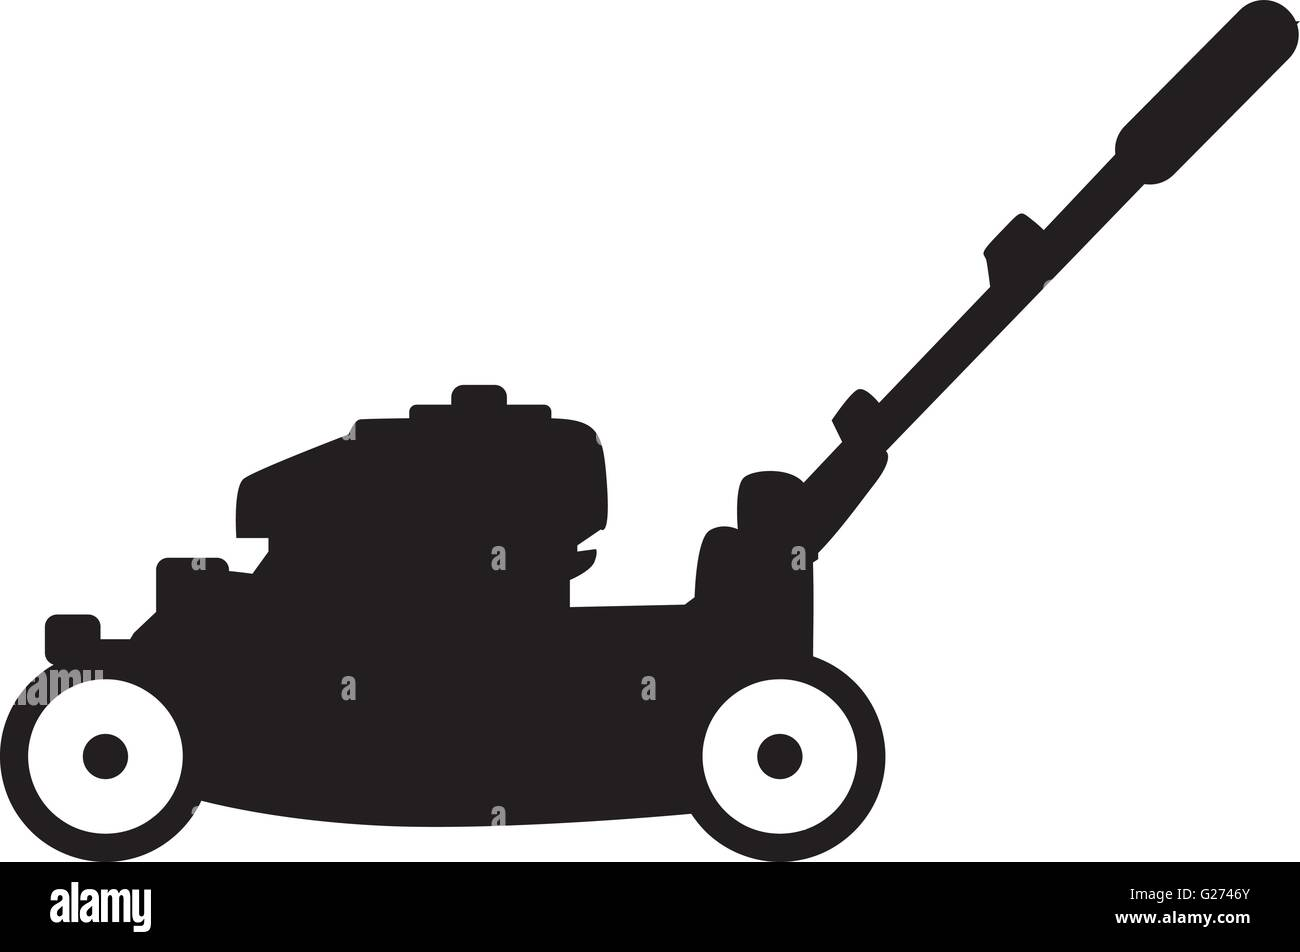 lawn mower vector - photo #19